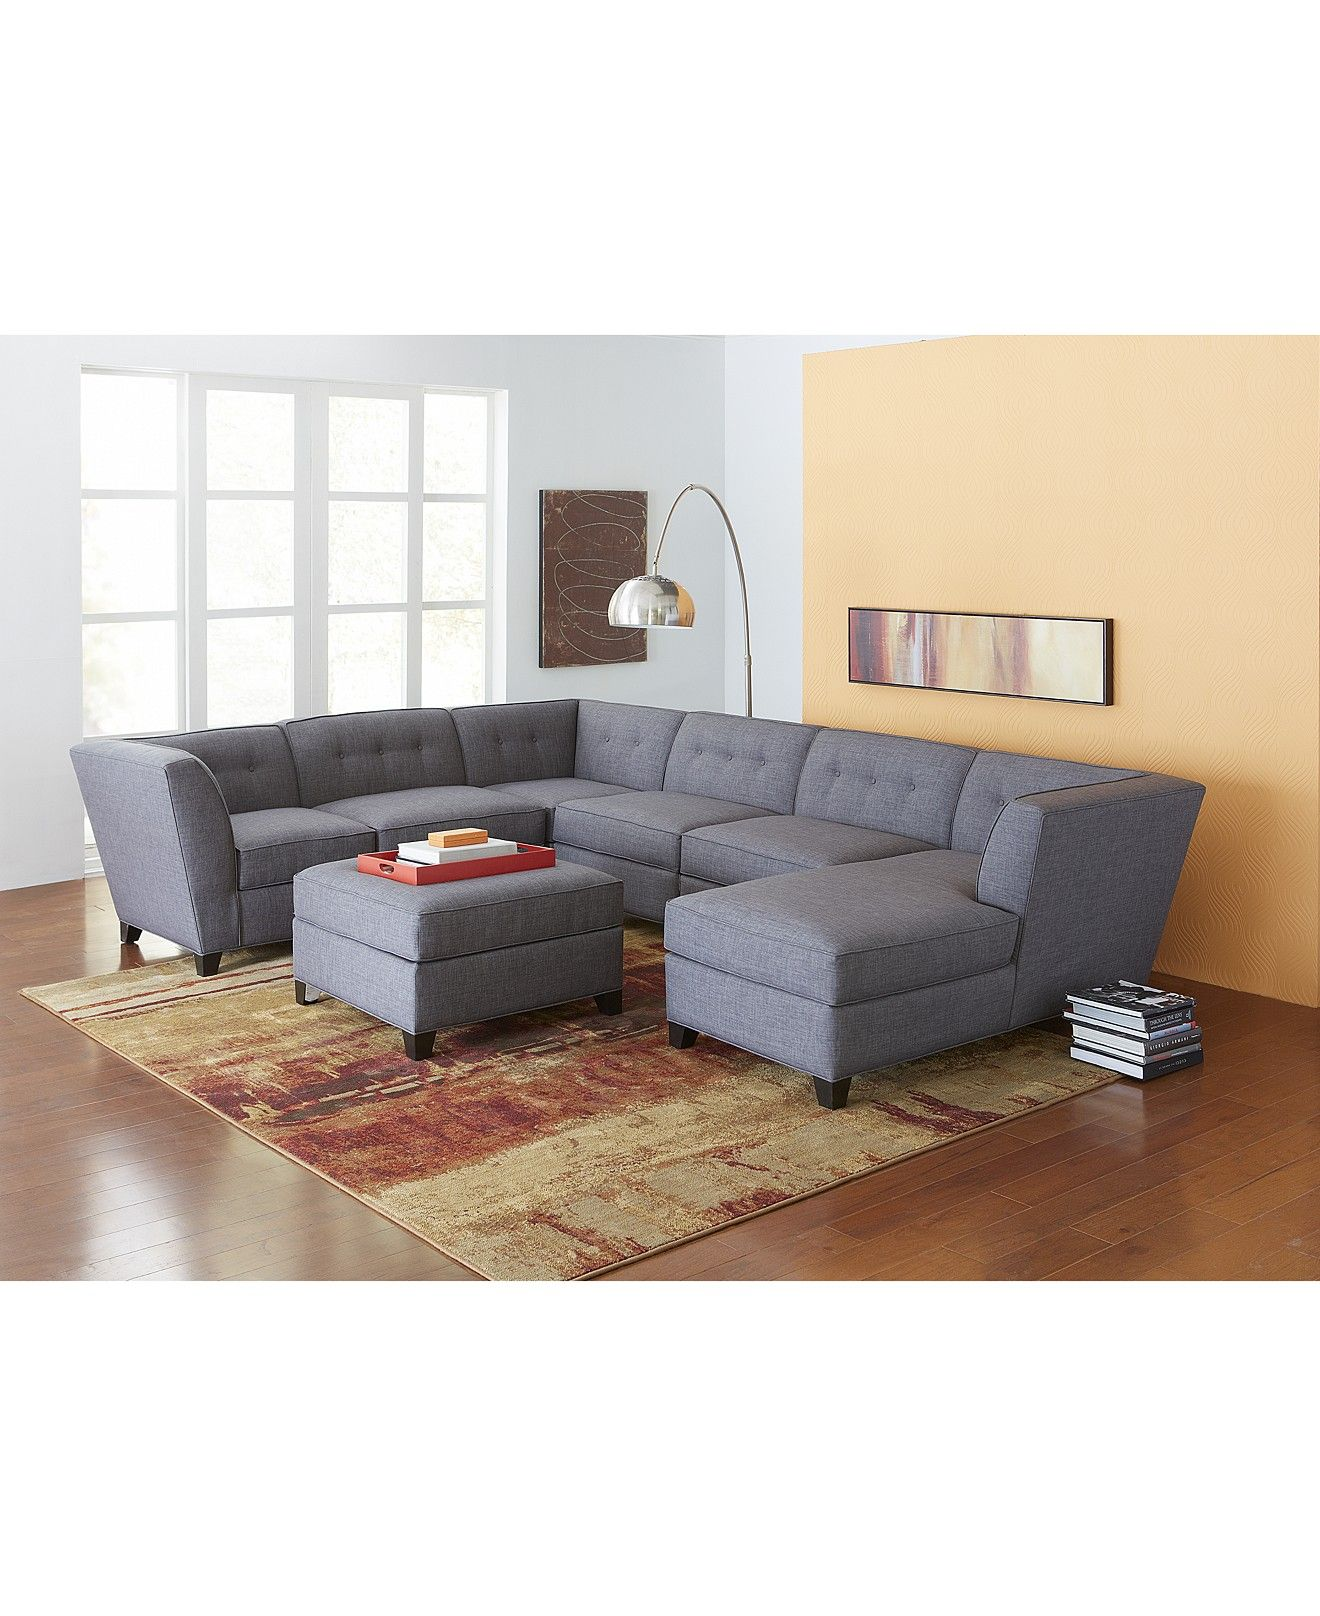 Harper Fabric 6 Piece Modular Sectional Sofa Leather Los Angeles Chaise Www